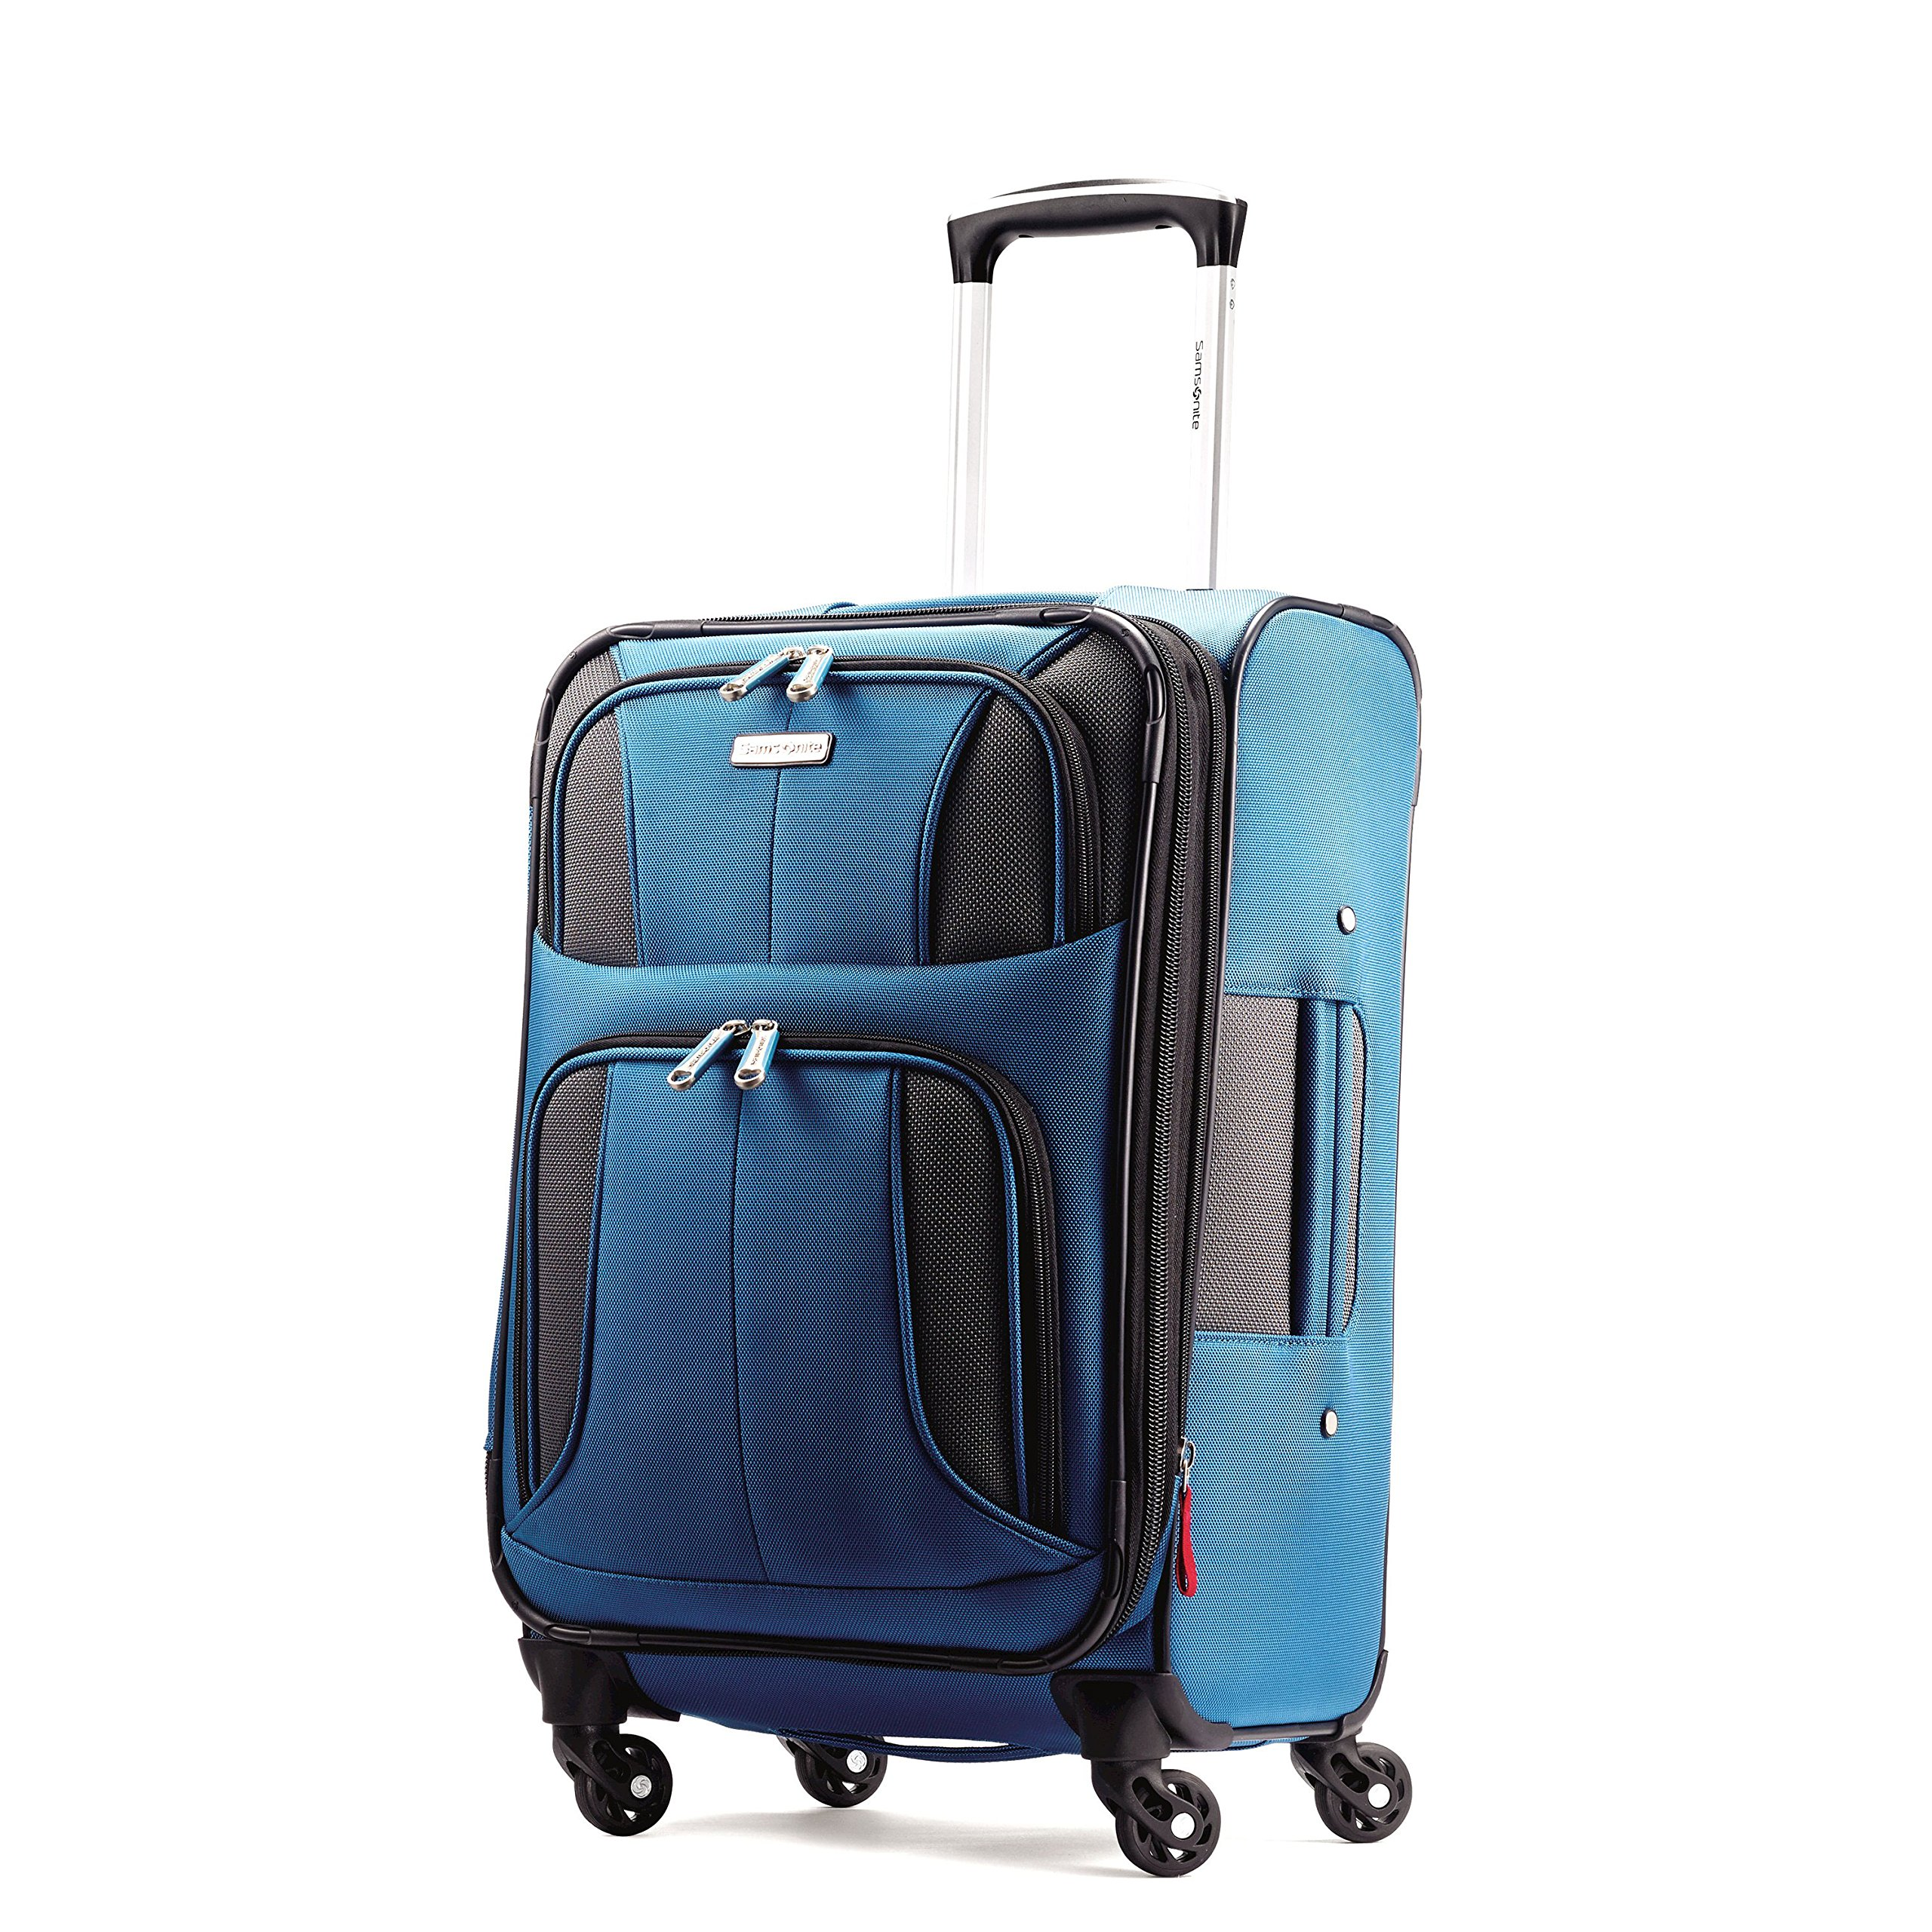 Samsonite Aspire Xlite Expandable Spinner 20'', Blue Dream